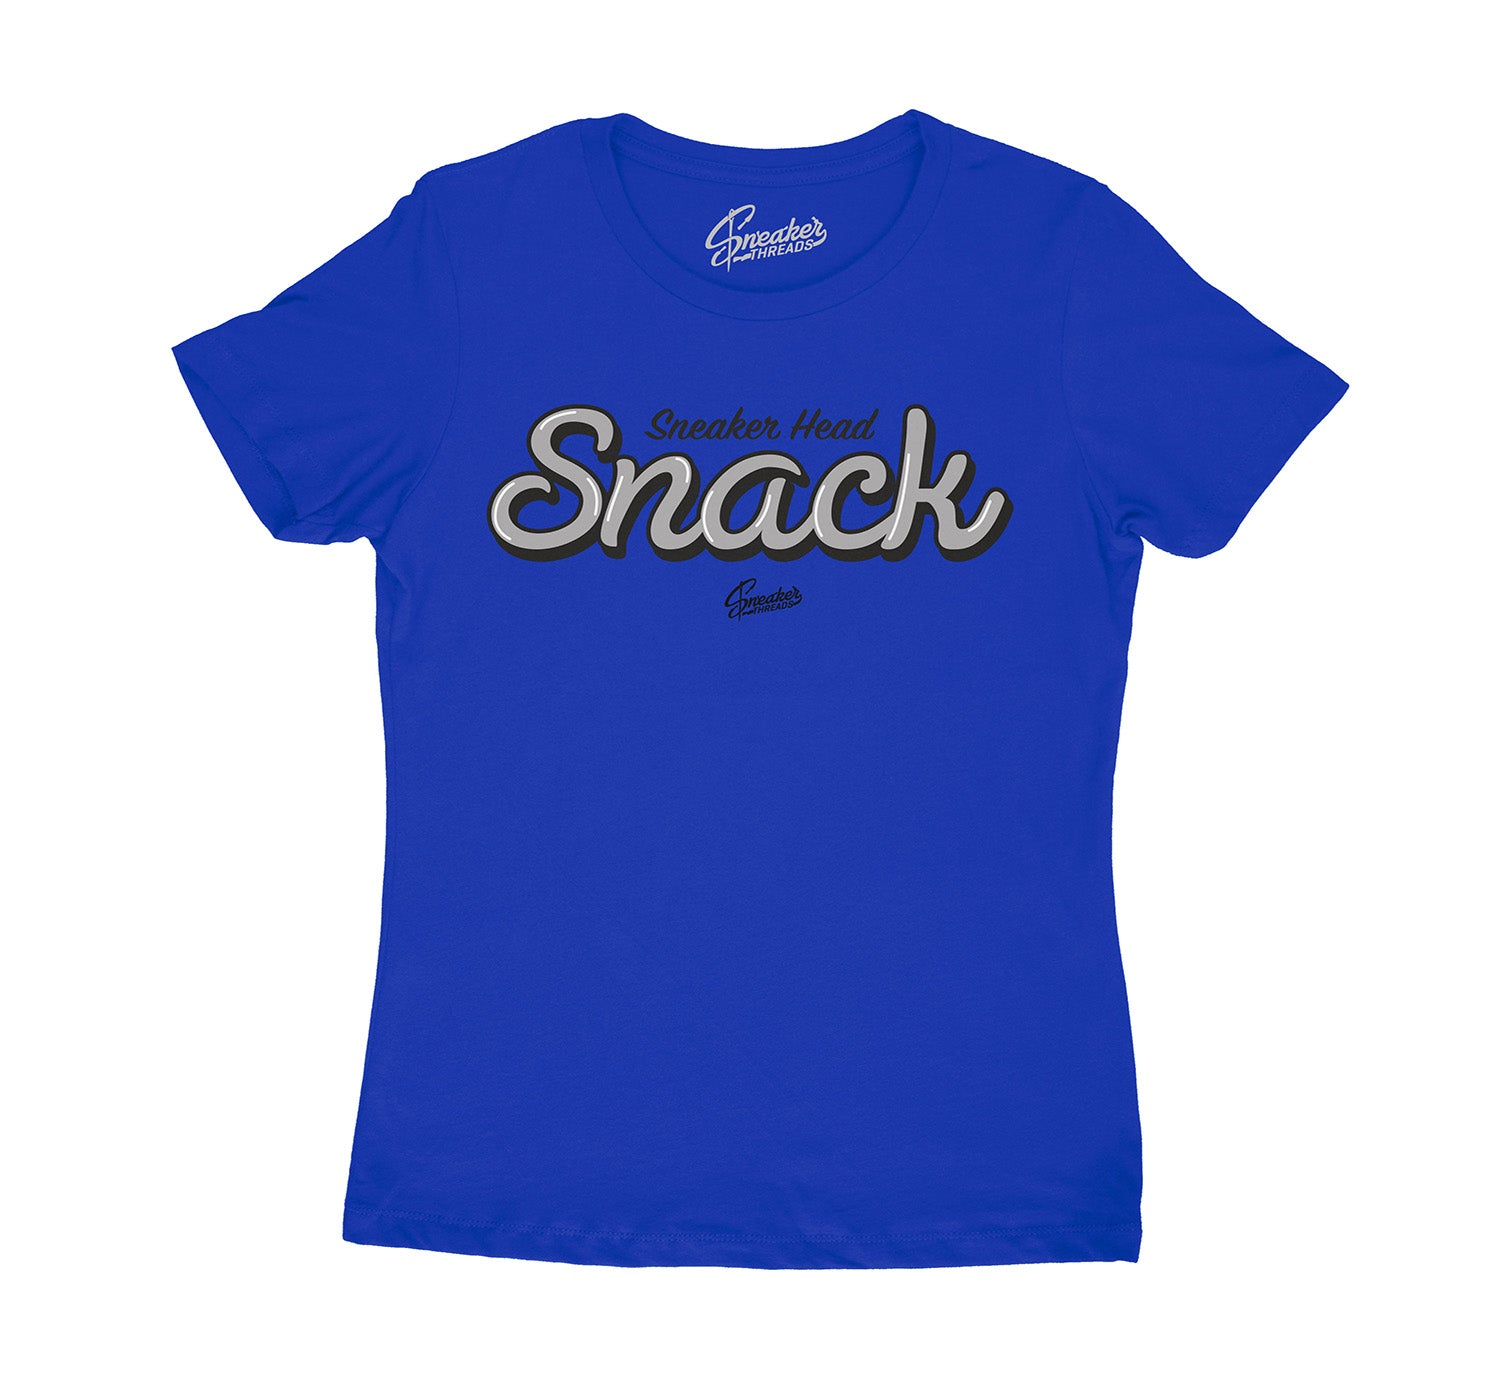 Jordan 12 Game Royal Snack shirts for women